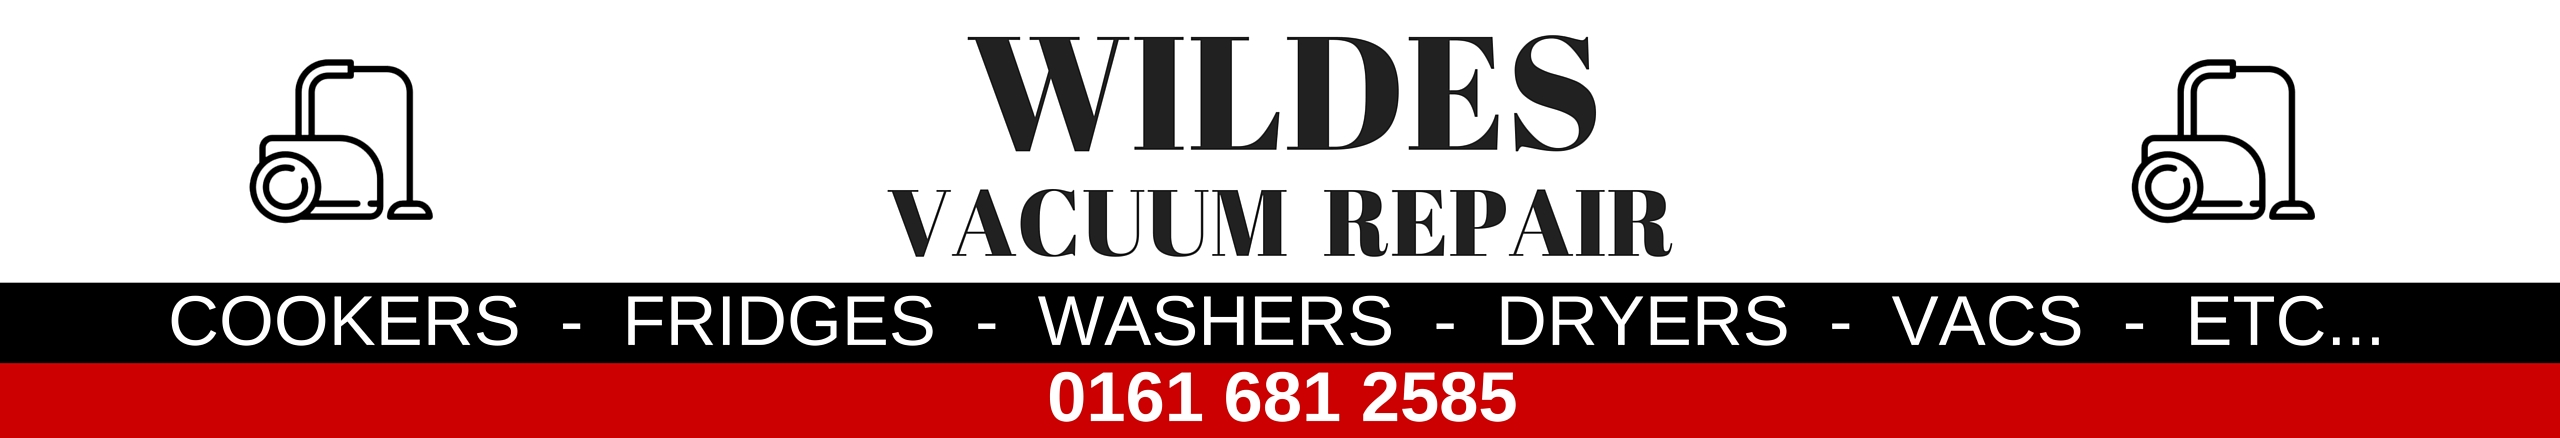 Vacuum cleaner repair in Failsworth, Chadderton, Oldham - Wildes Domestics